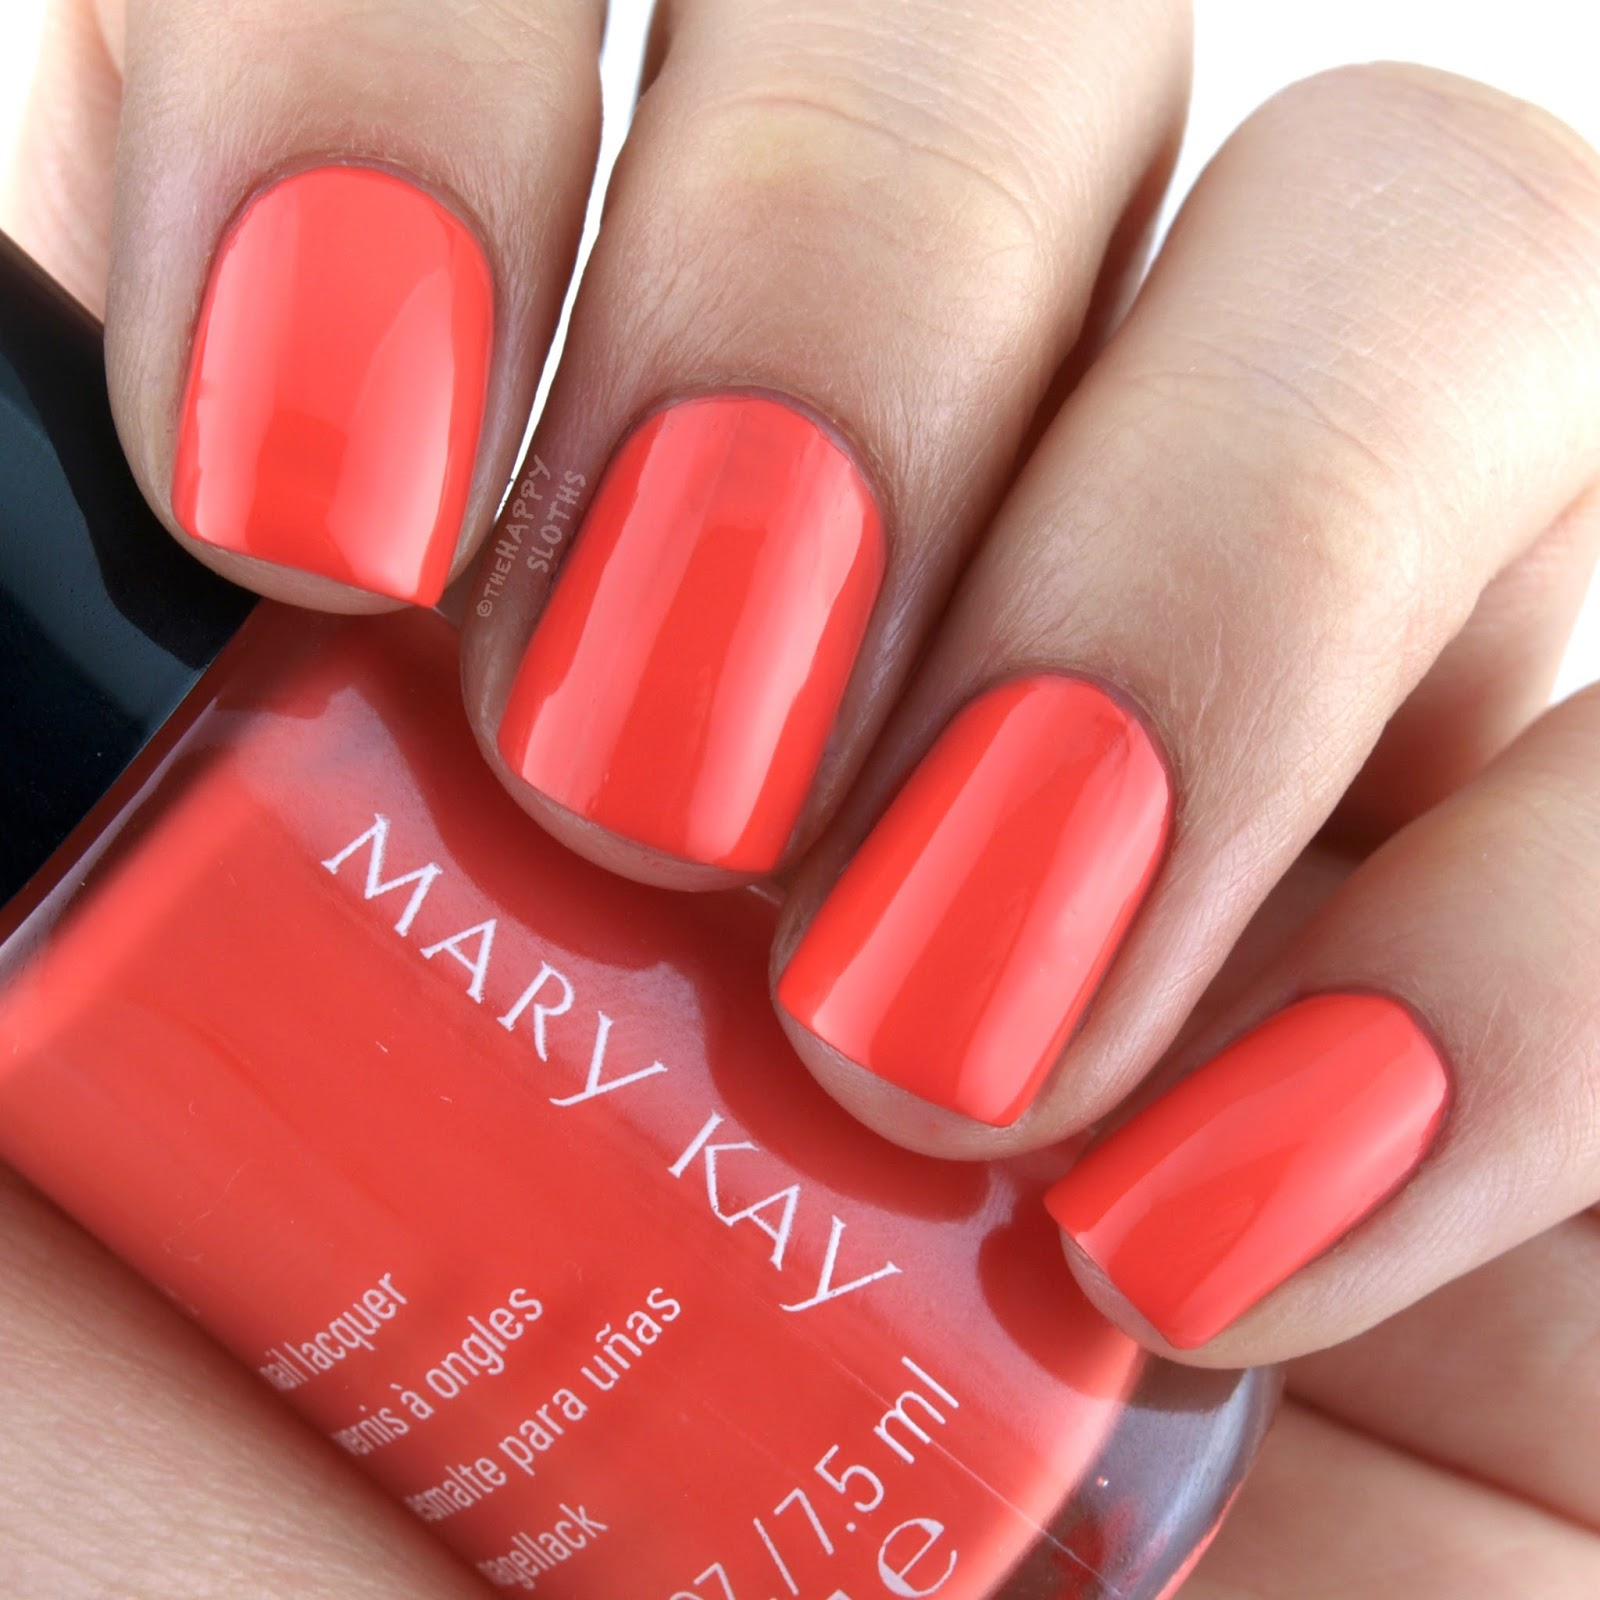 Mary Kay Spring 2017 Light, Reinvented Collection Nail Lacquer Vivid Sunburst: Review and Swatches